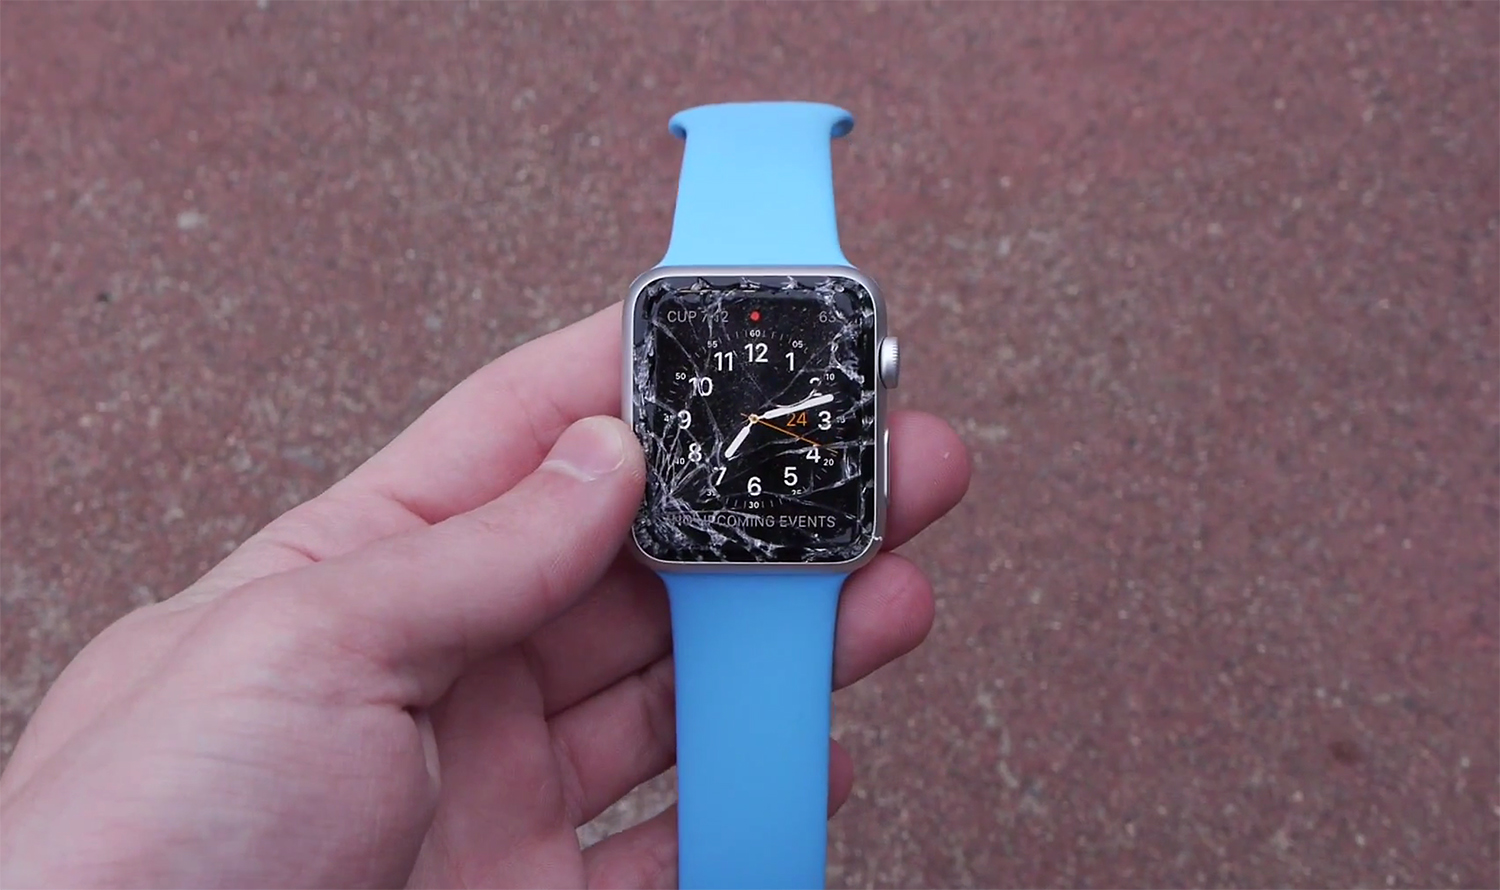 apple-watch-sport-drop-test-ion-x-glass.jpg